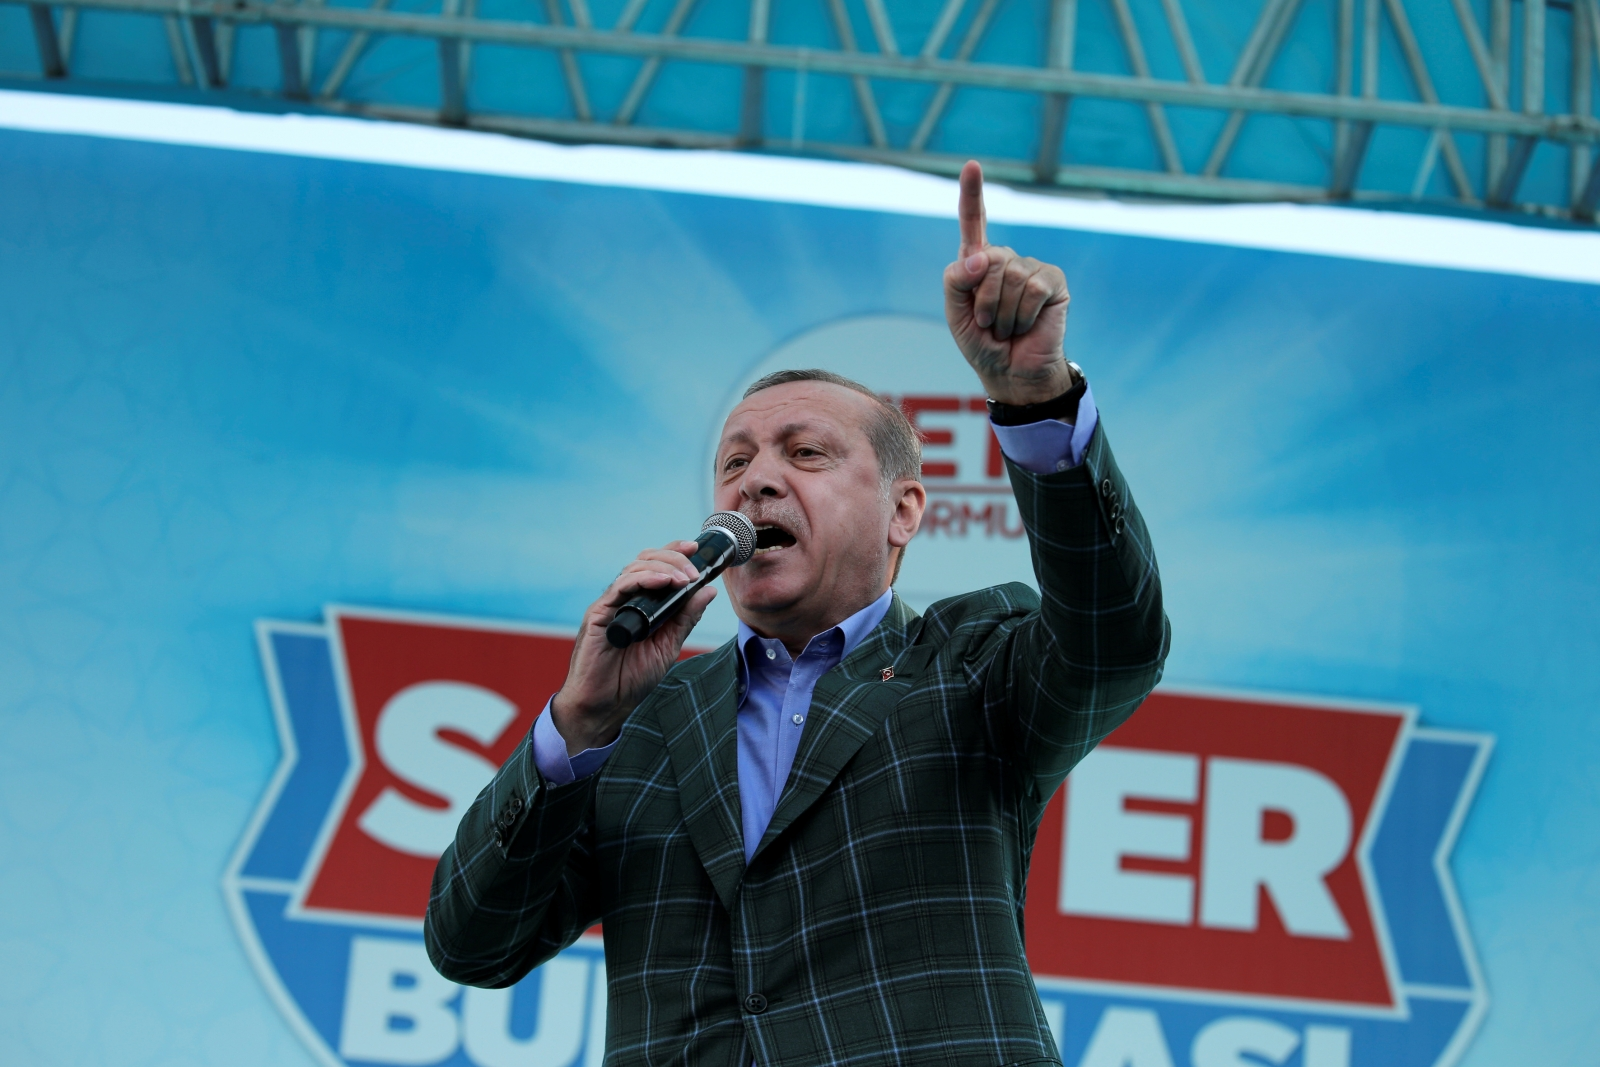 Erdogan unfazed by vote criticism as he hails approval to expand powers